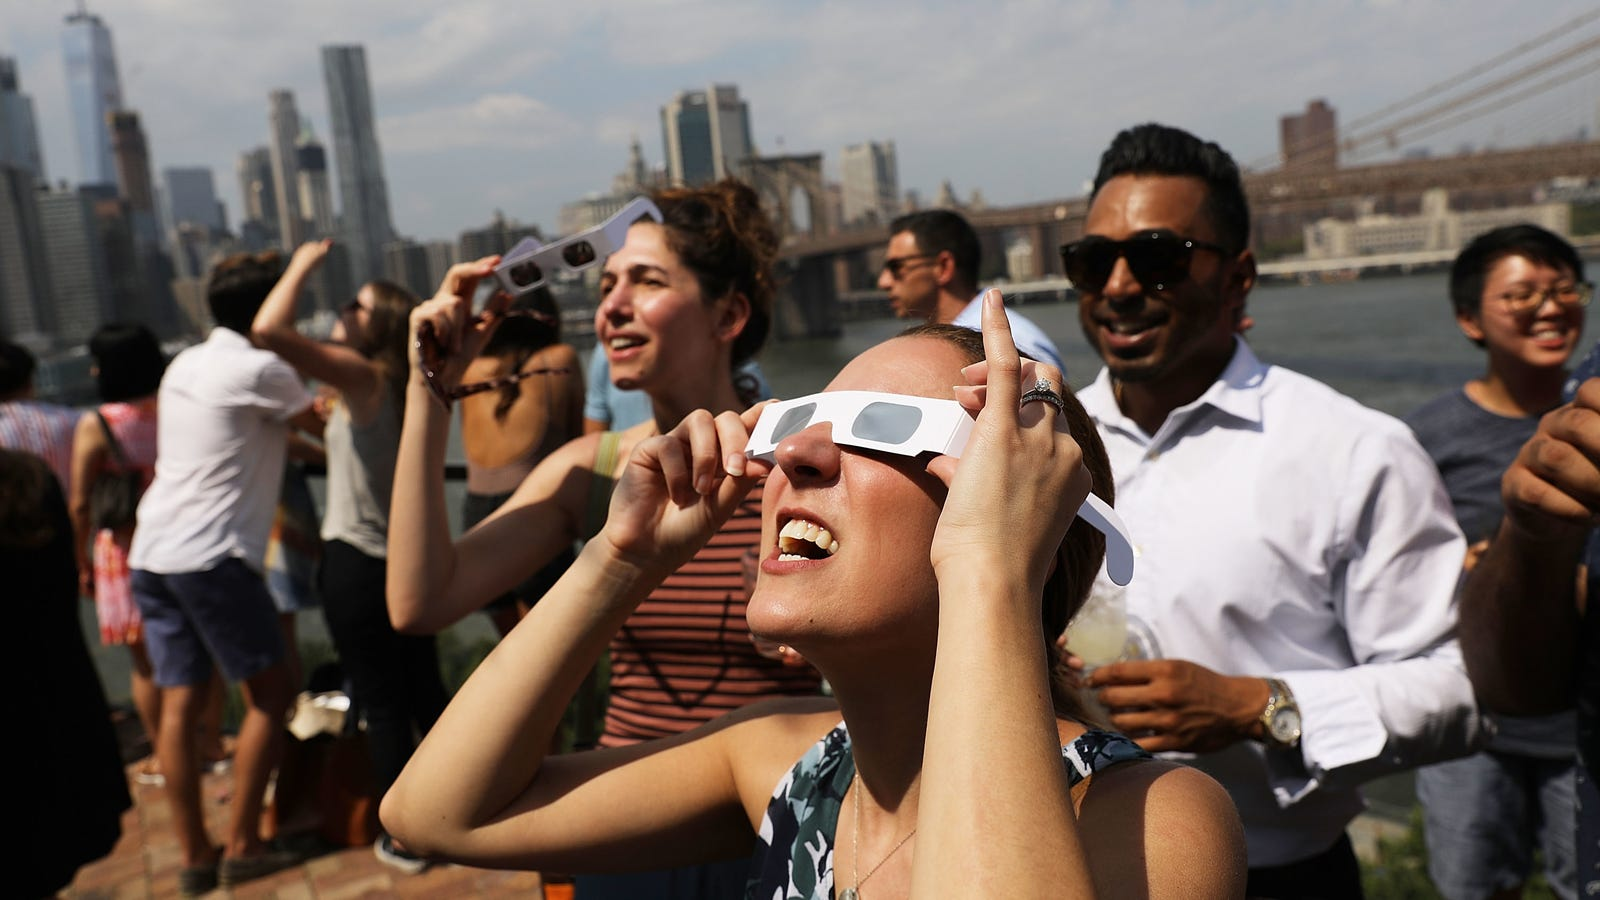 You Can Actually Do Something Good With Those Eclipse Glasses